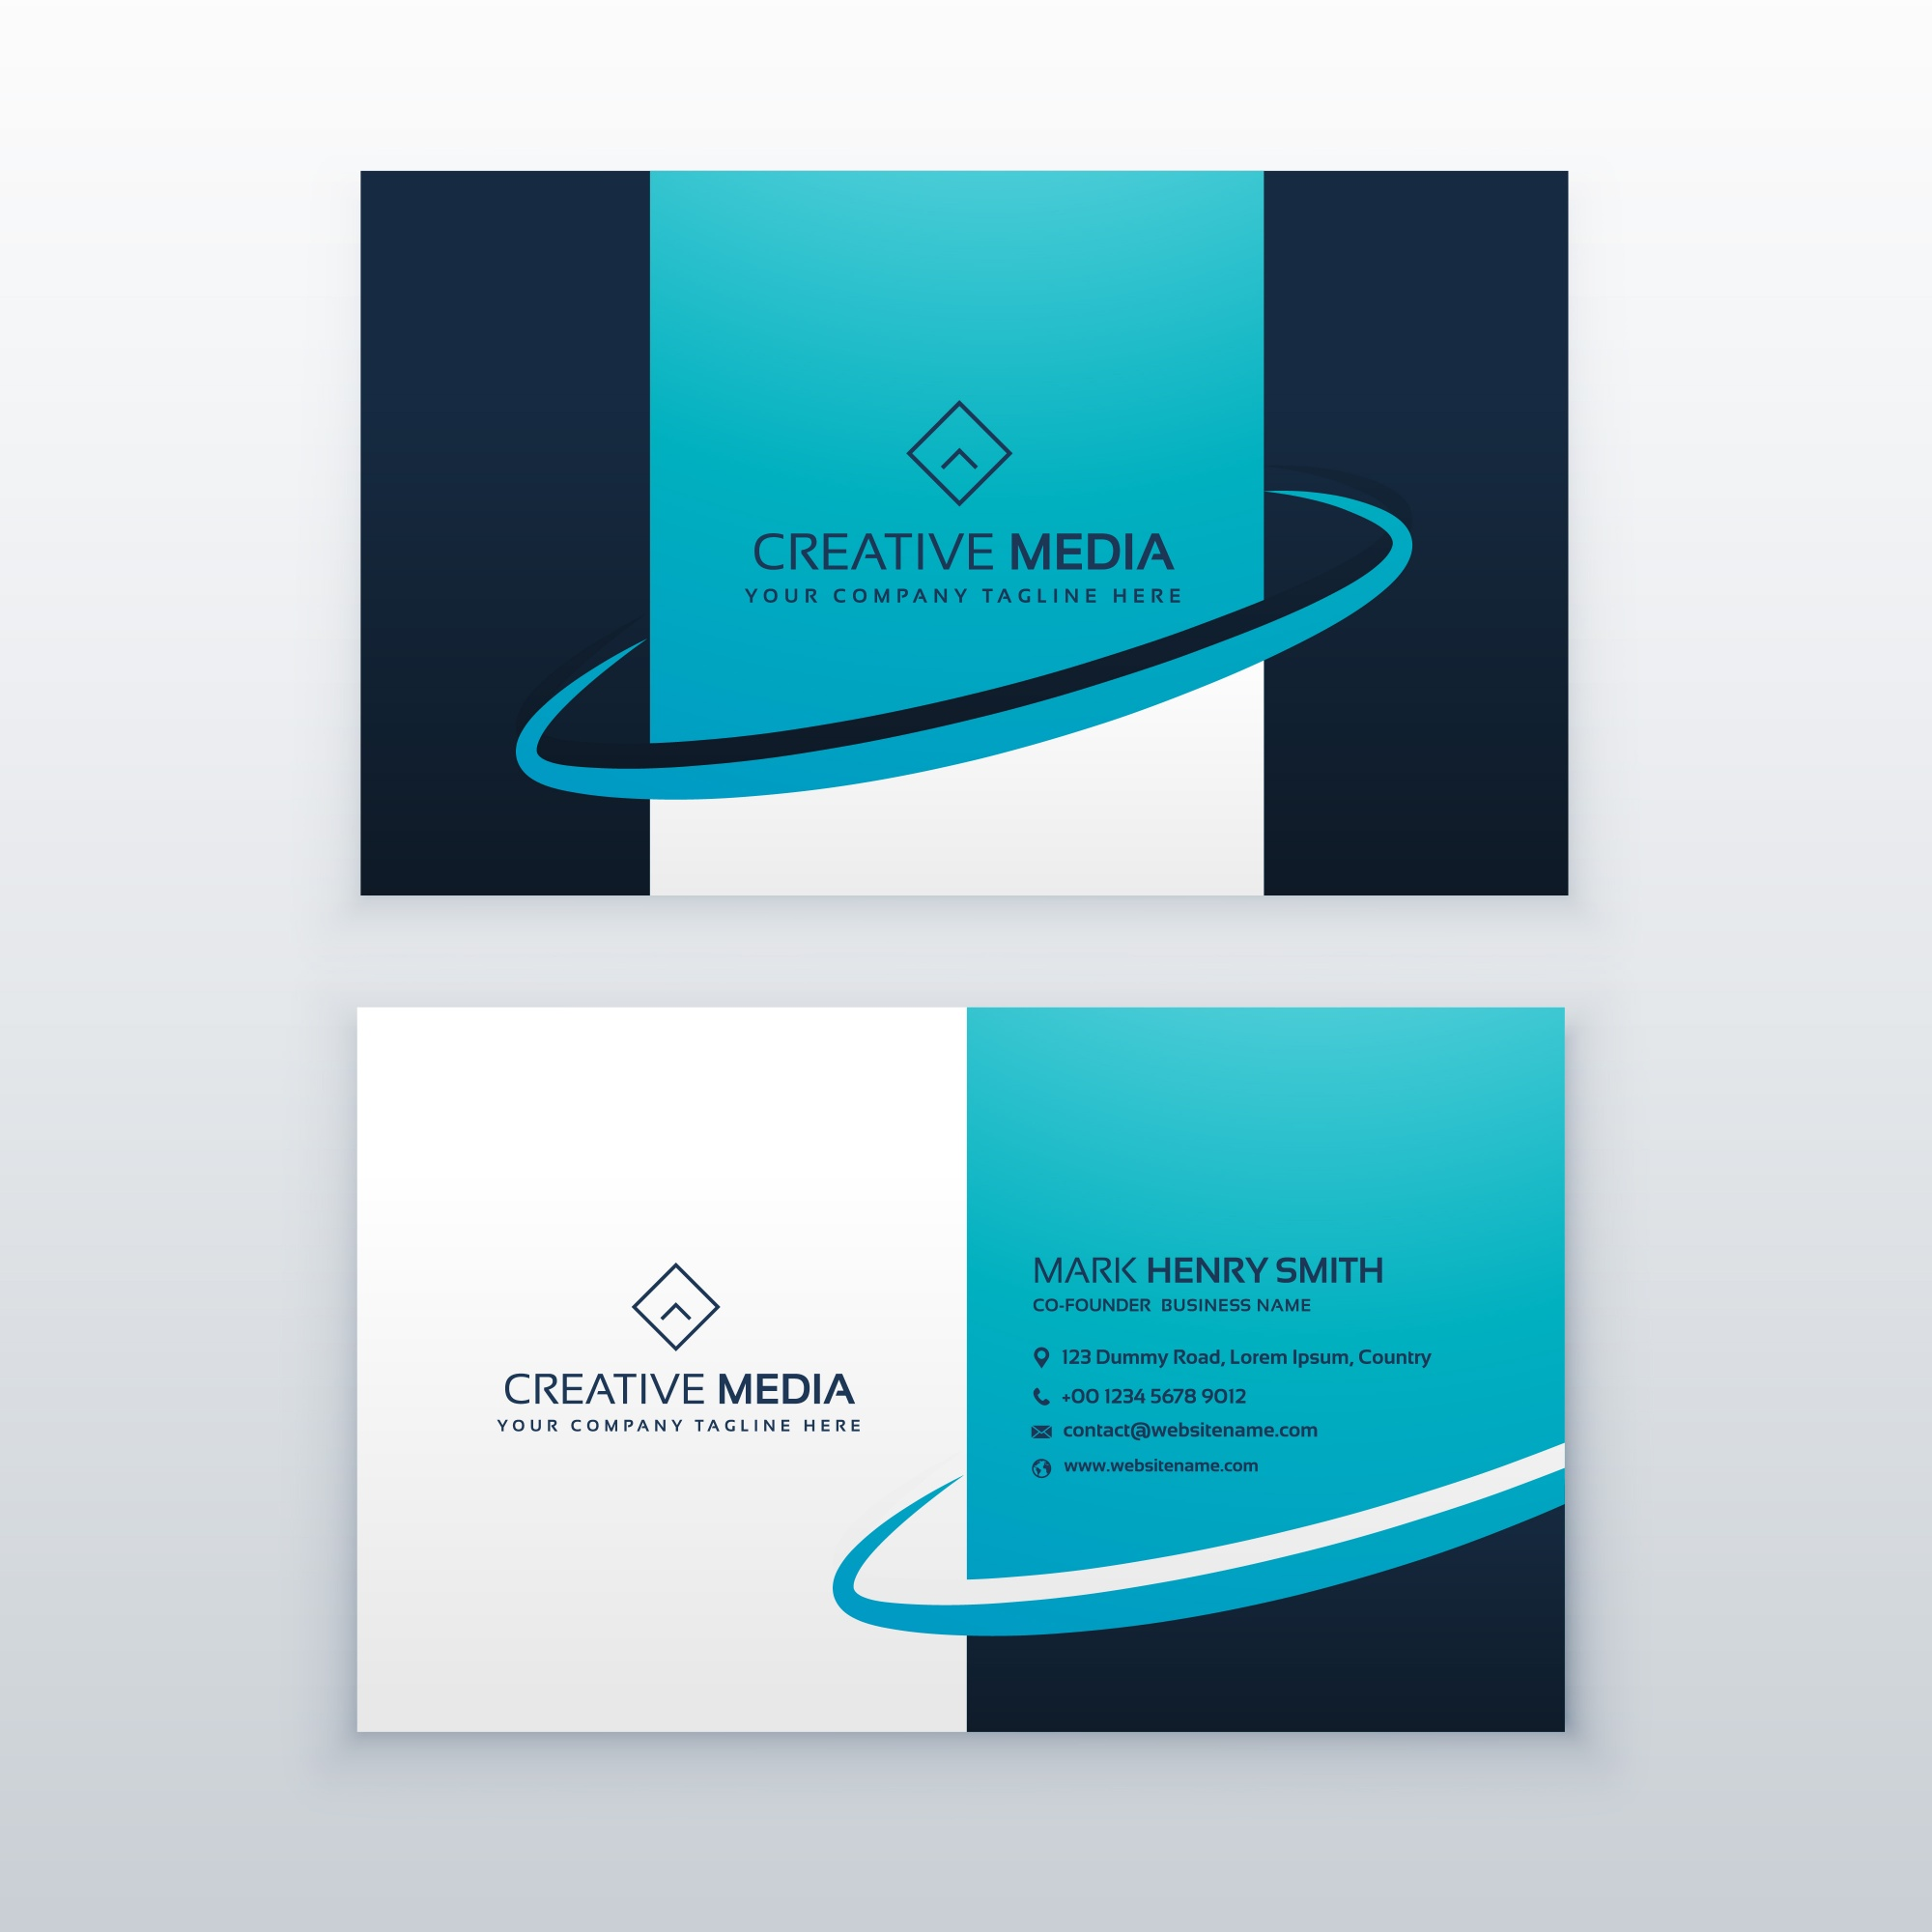 Blue business card vector design template